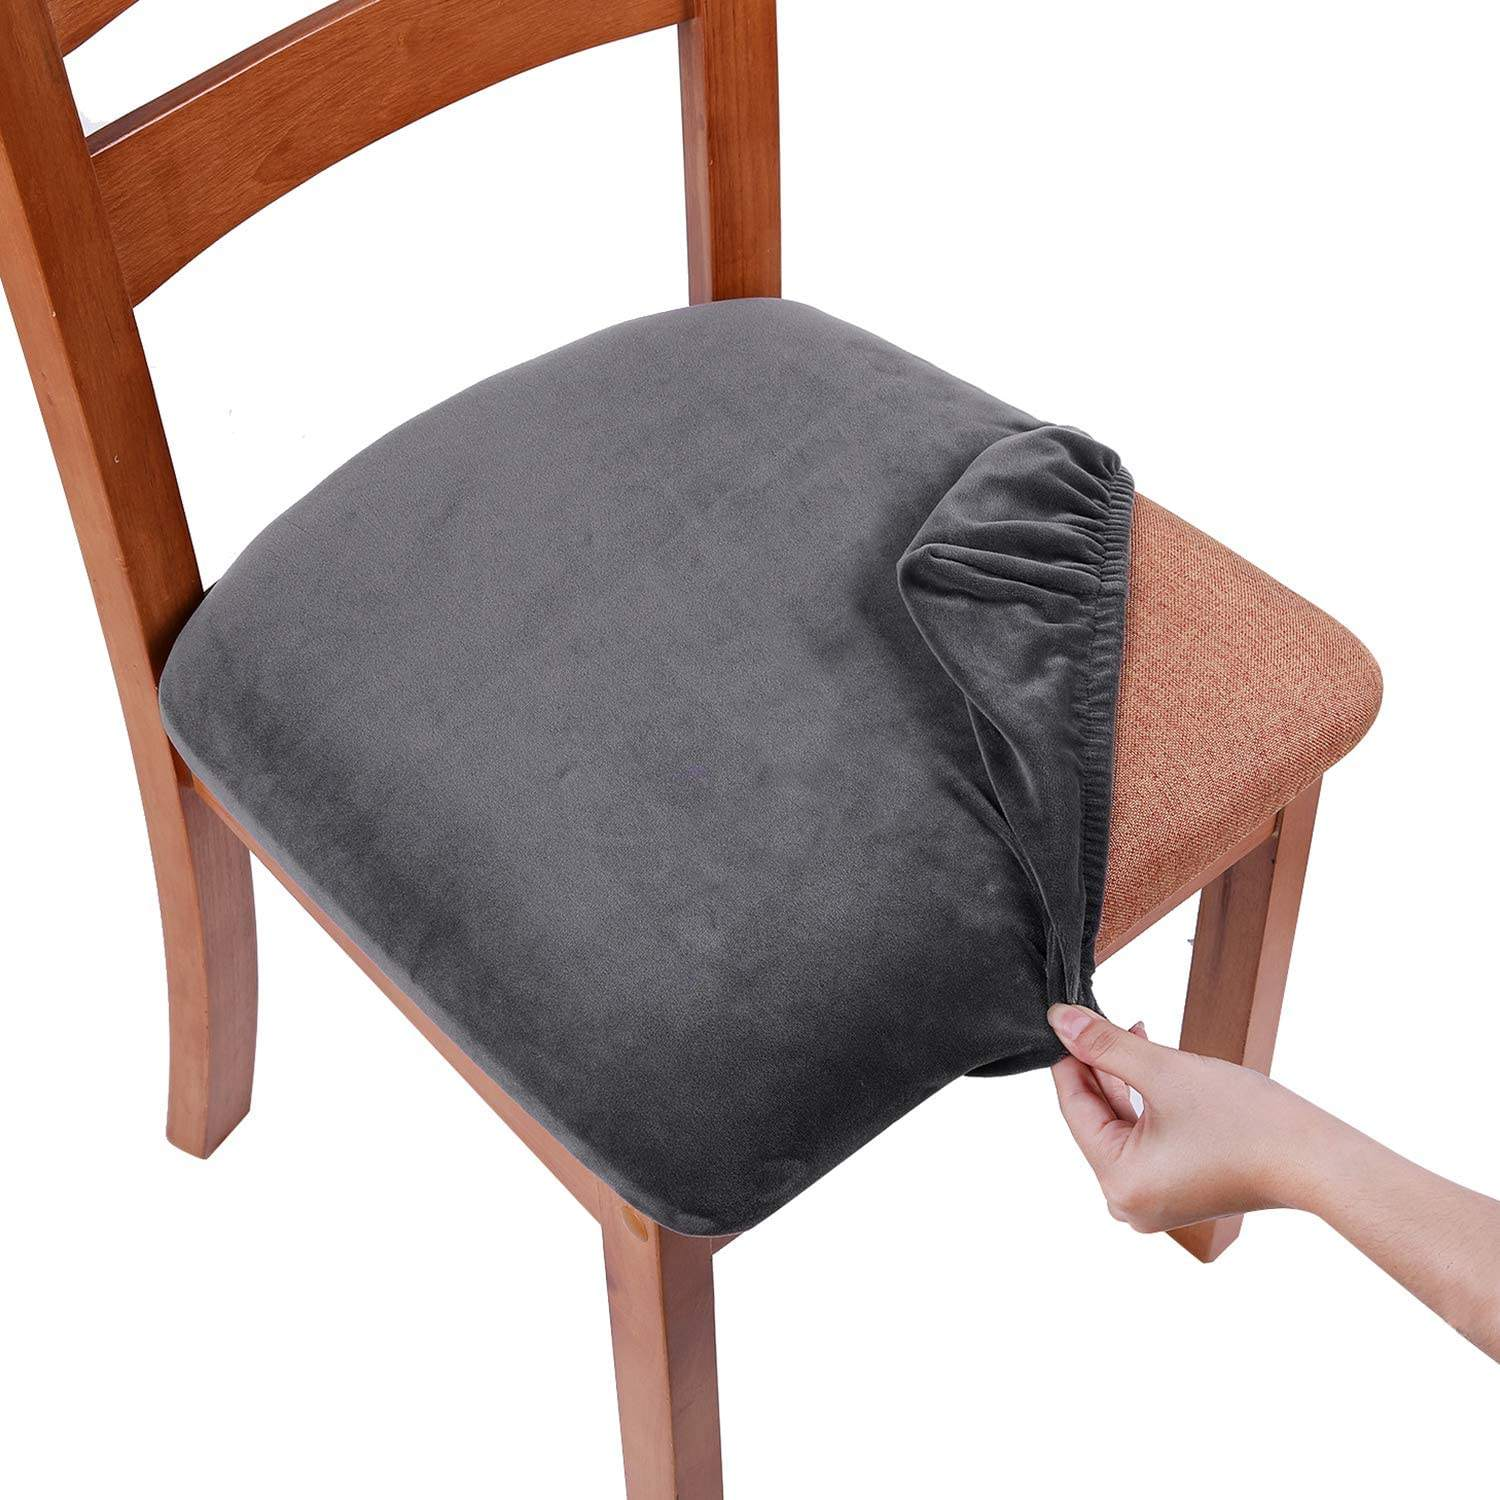 Velvet Dining Stretch Fitted Dining Room Upholstered Chair Seat Cushion Cover, Removable Washable Furniture Protector Slipcovers